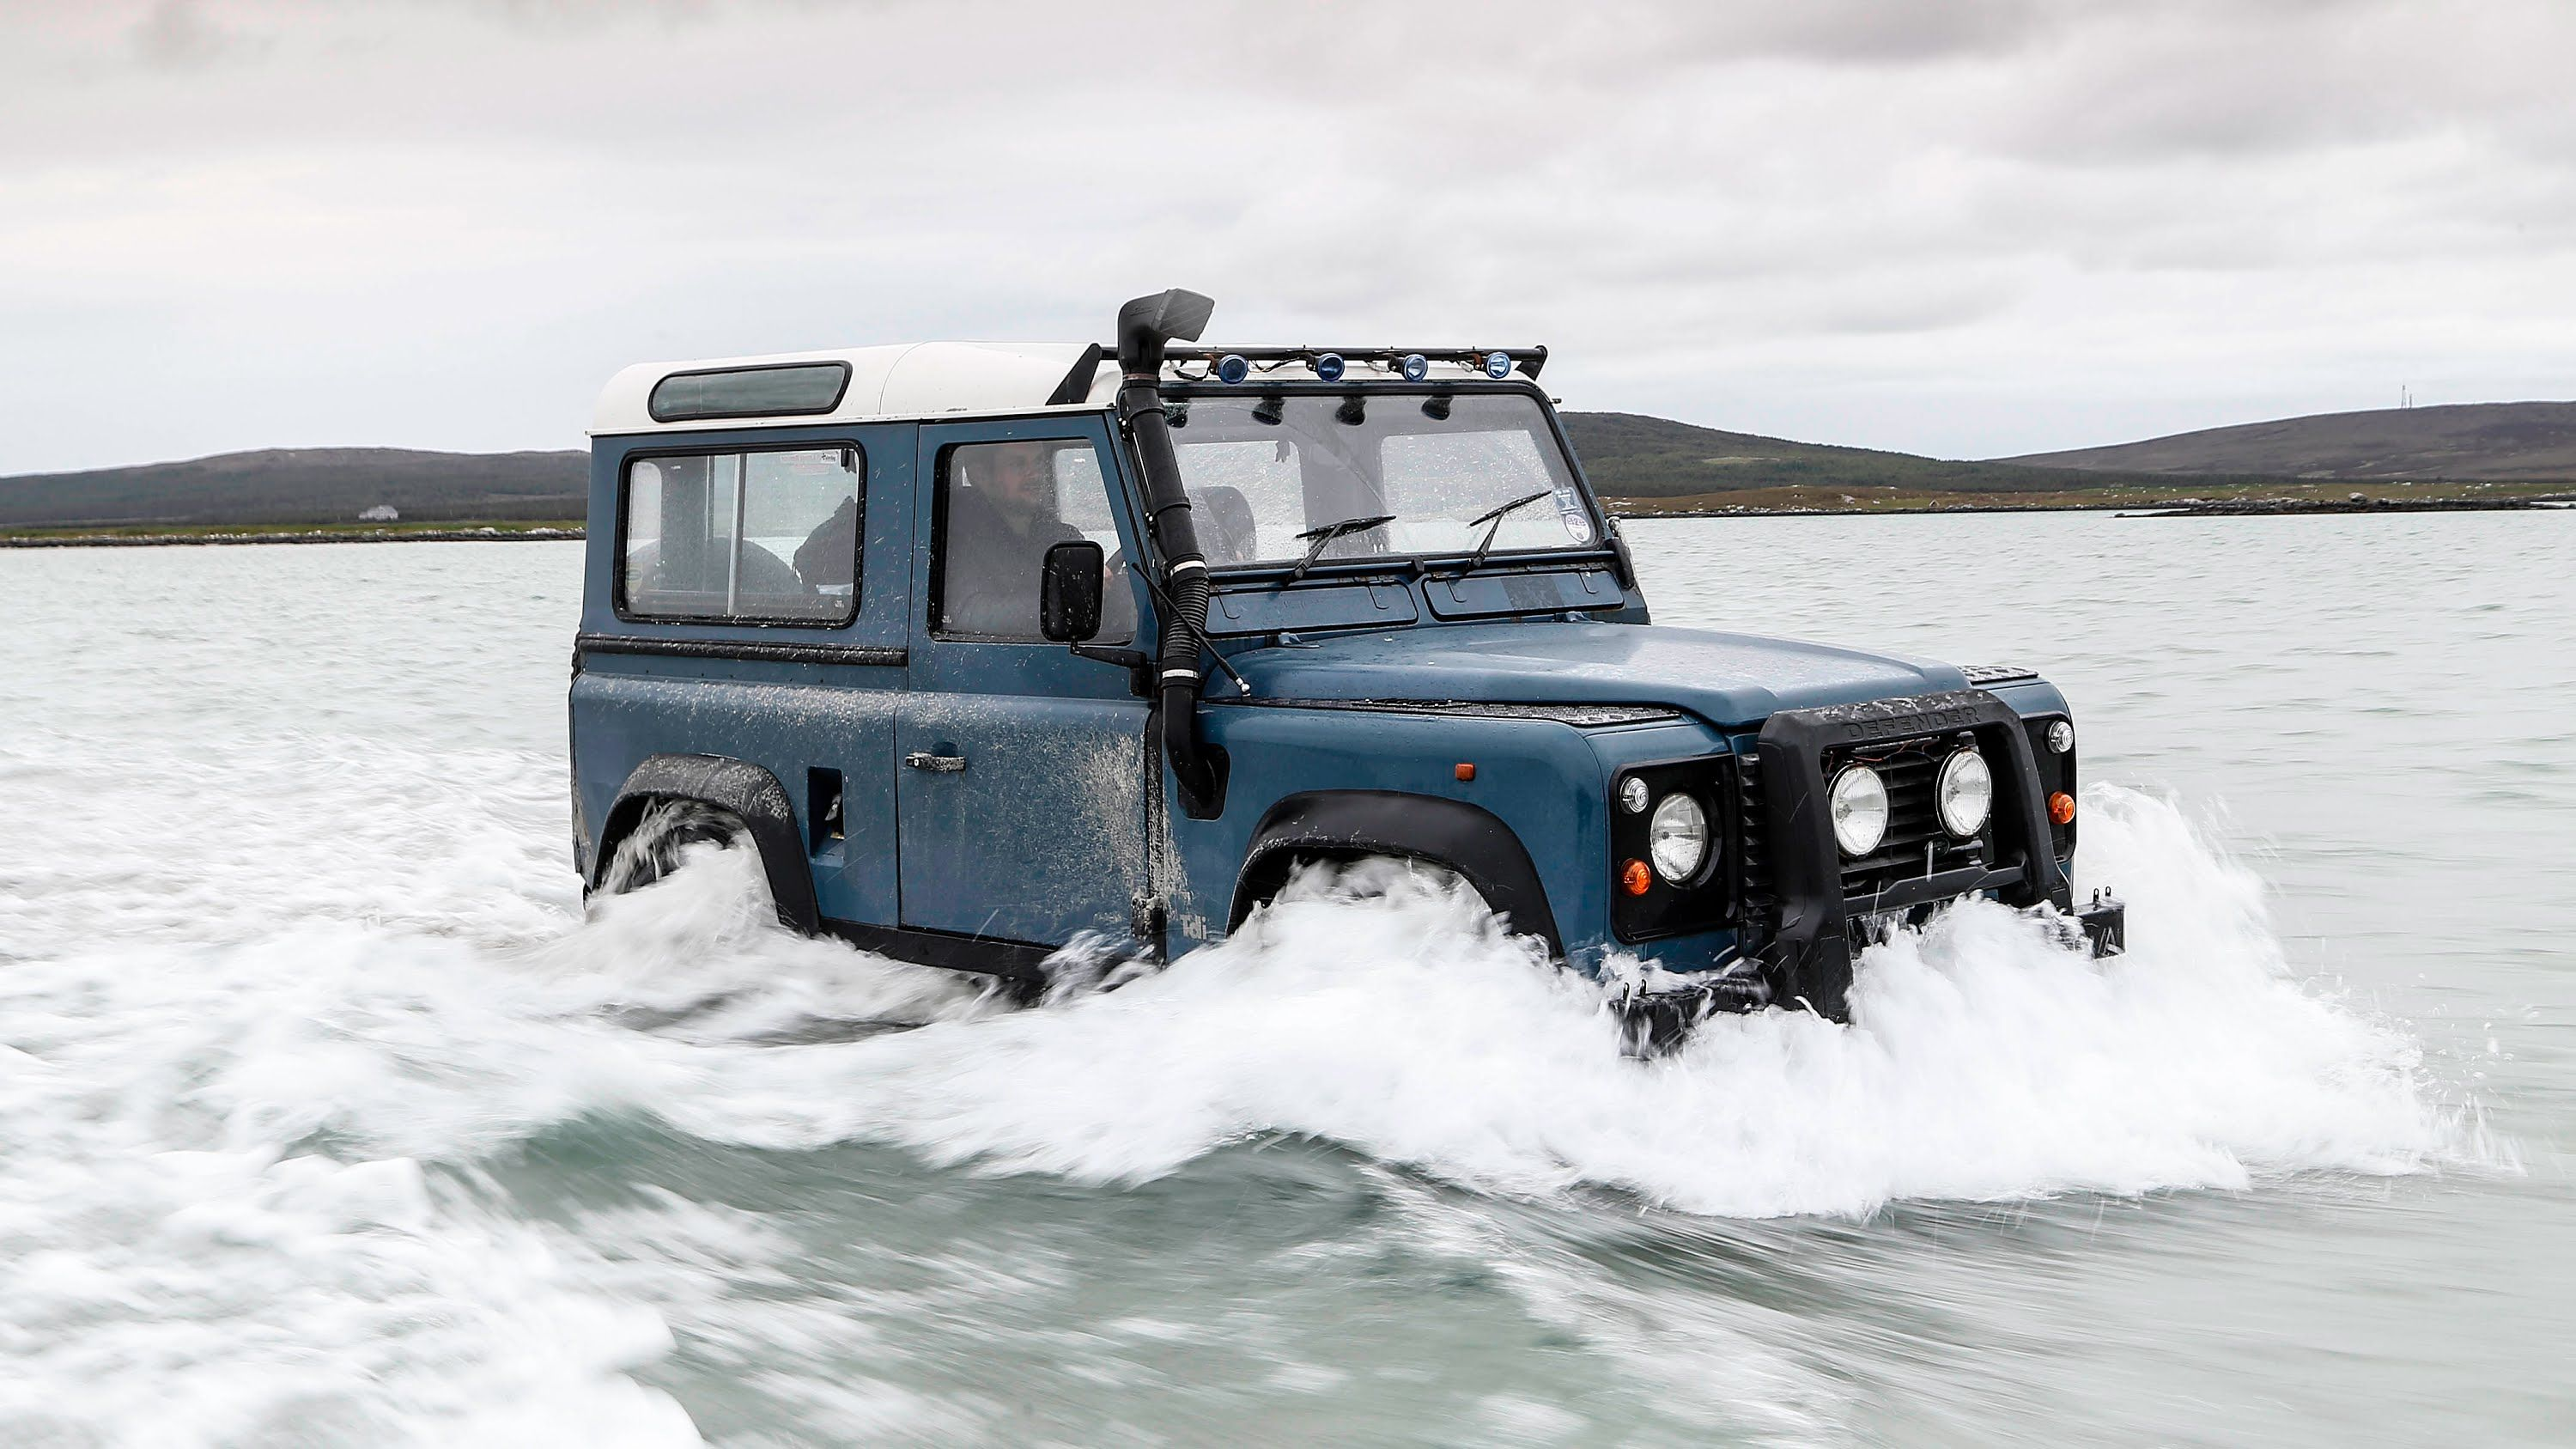 Land Rover Defender Vs The Atlantic Ocean And The Car Wins Just